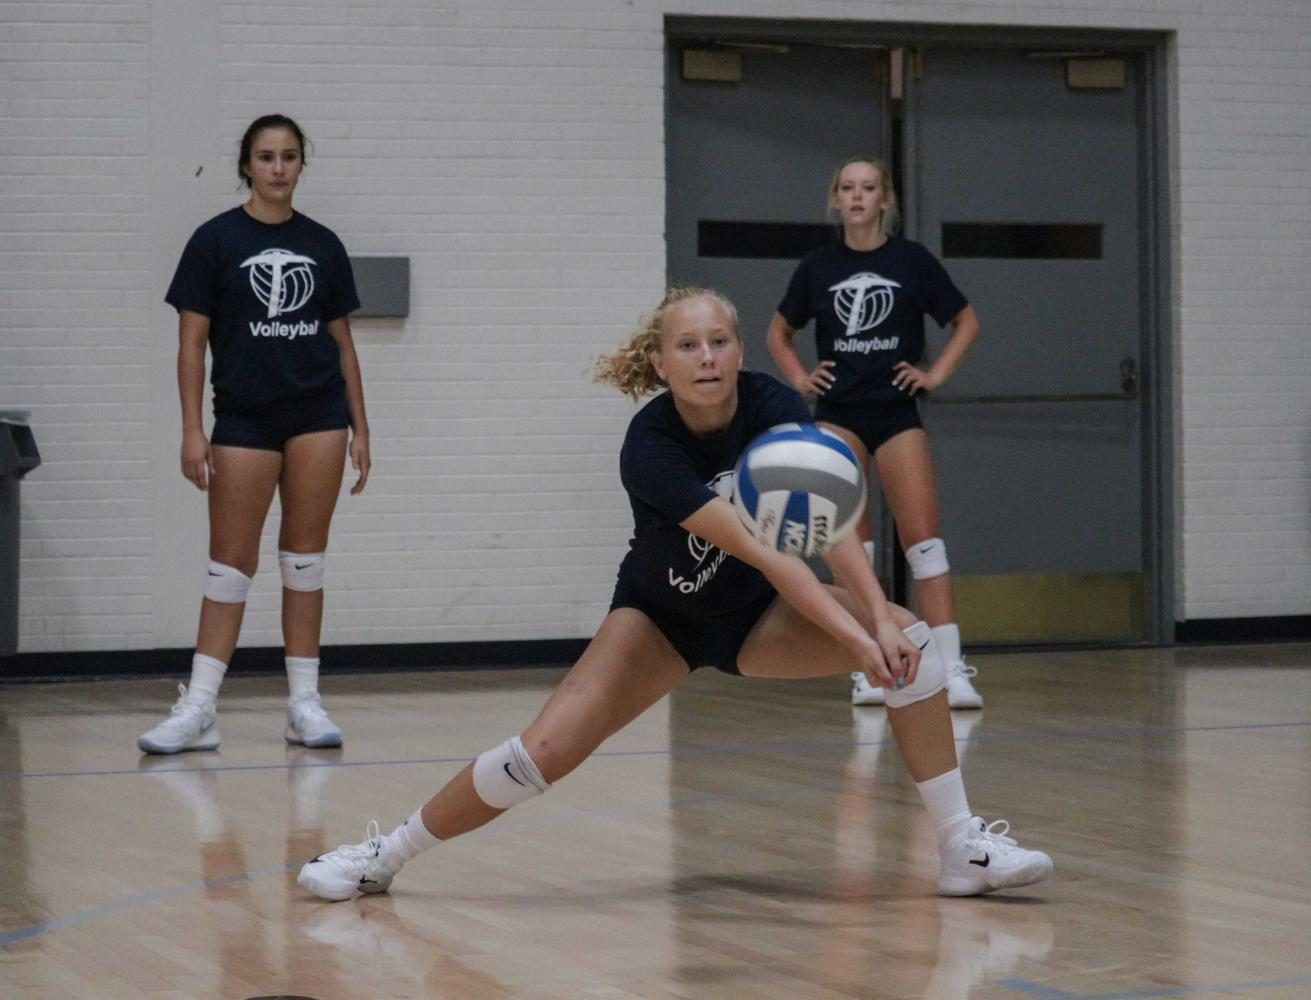 Miners beat Western New Mexico 4-1 in exhibition opener